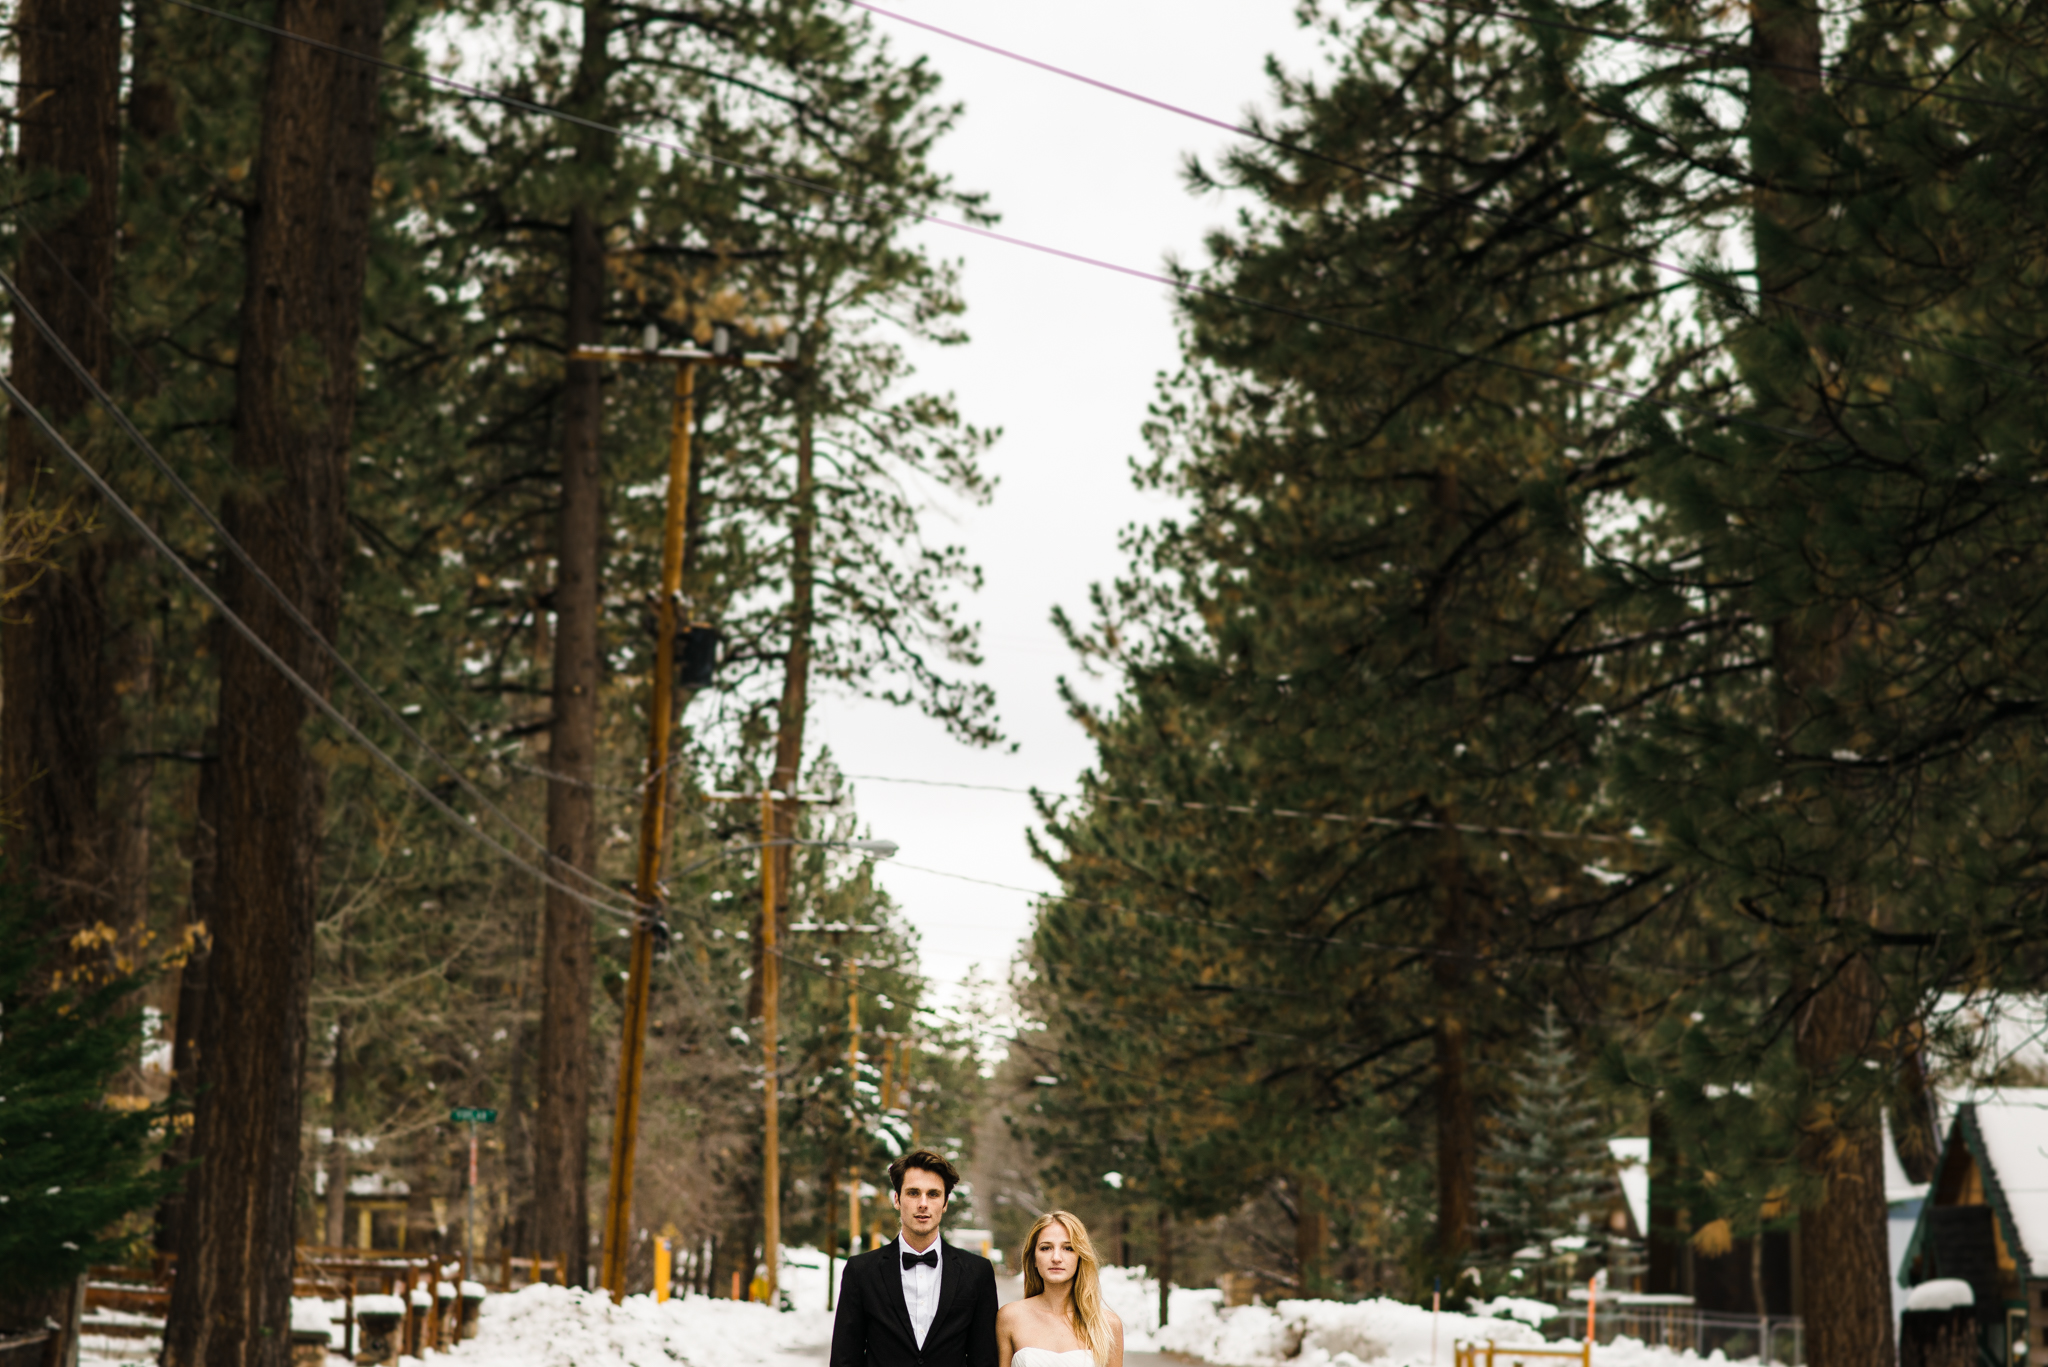 ©Isaiah & Taylor Photography - Ben & Kadin Honeymoon-013.jpg